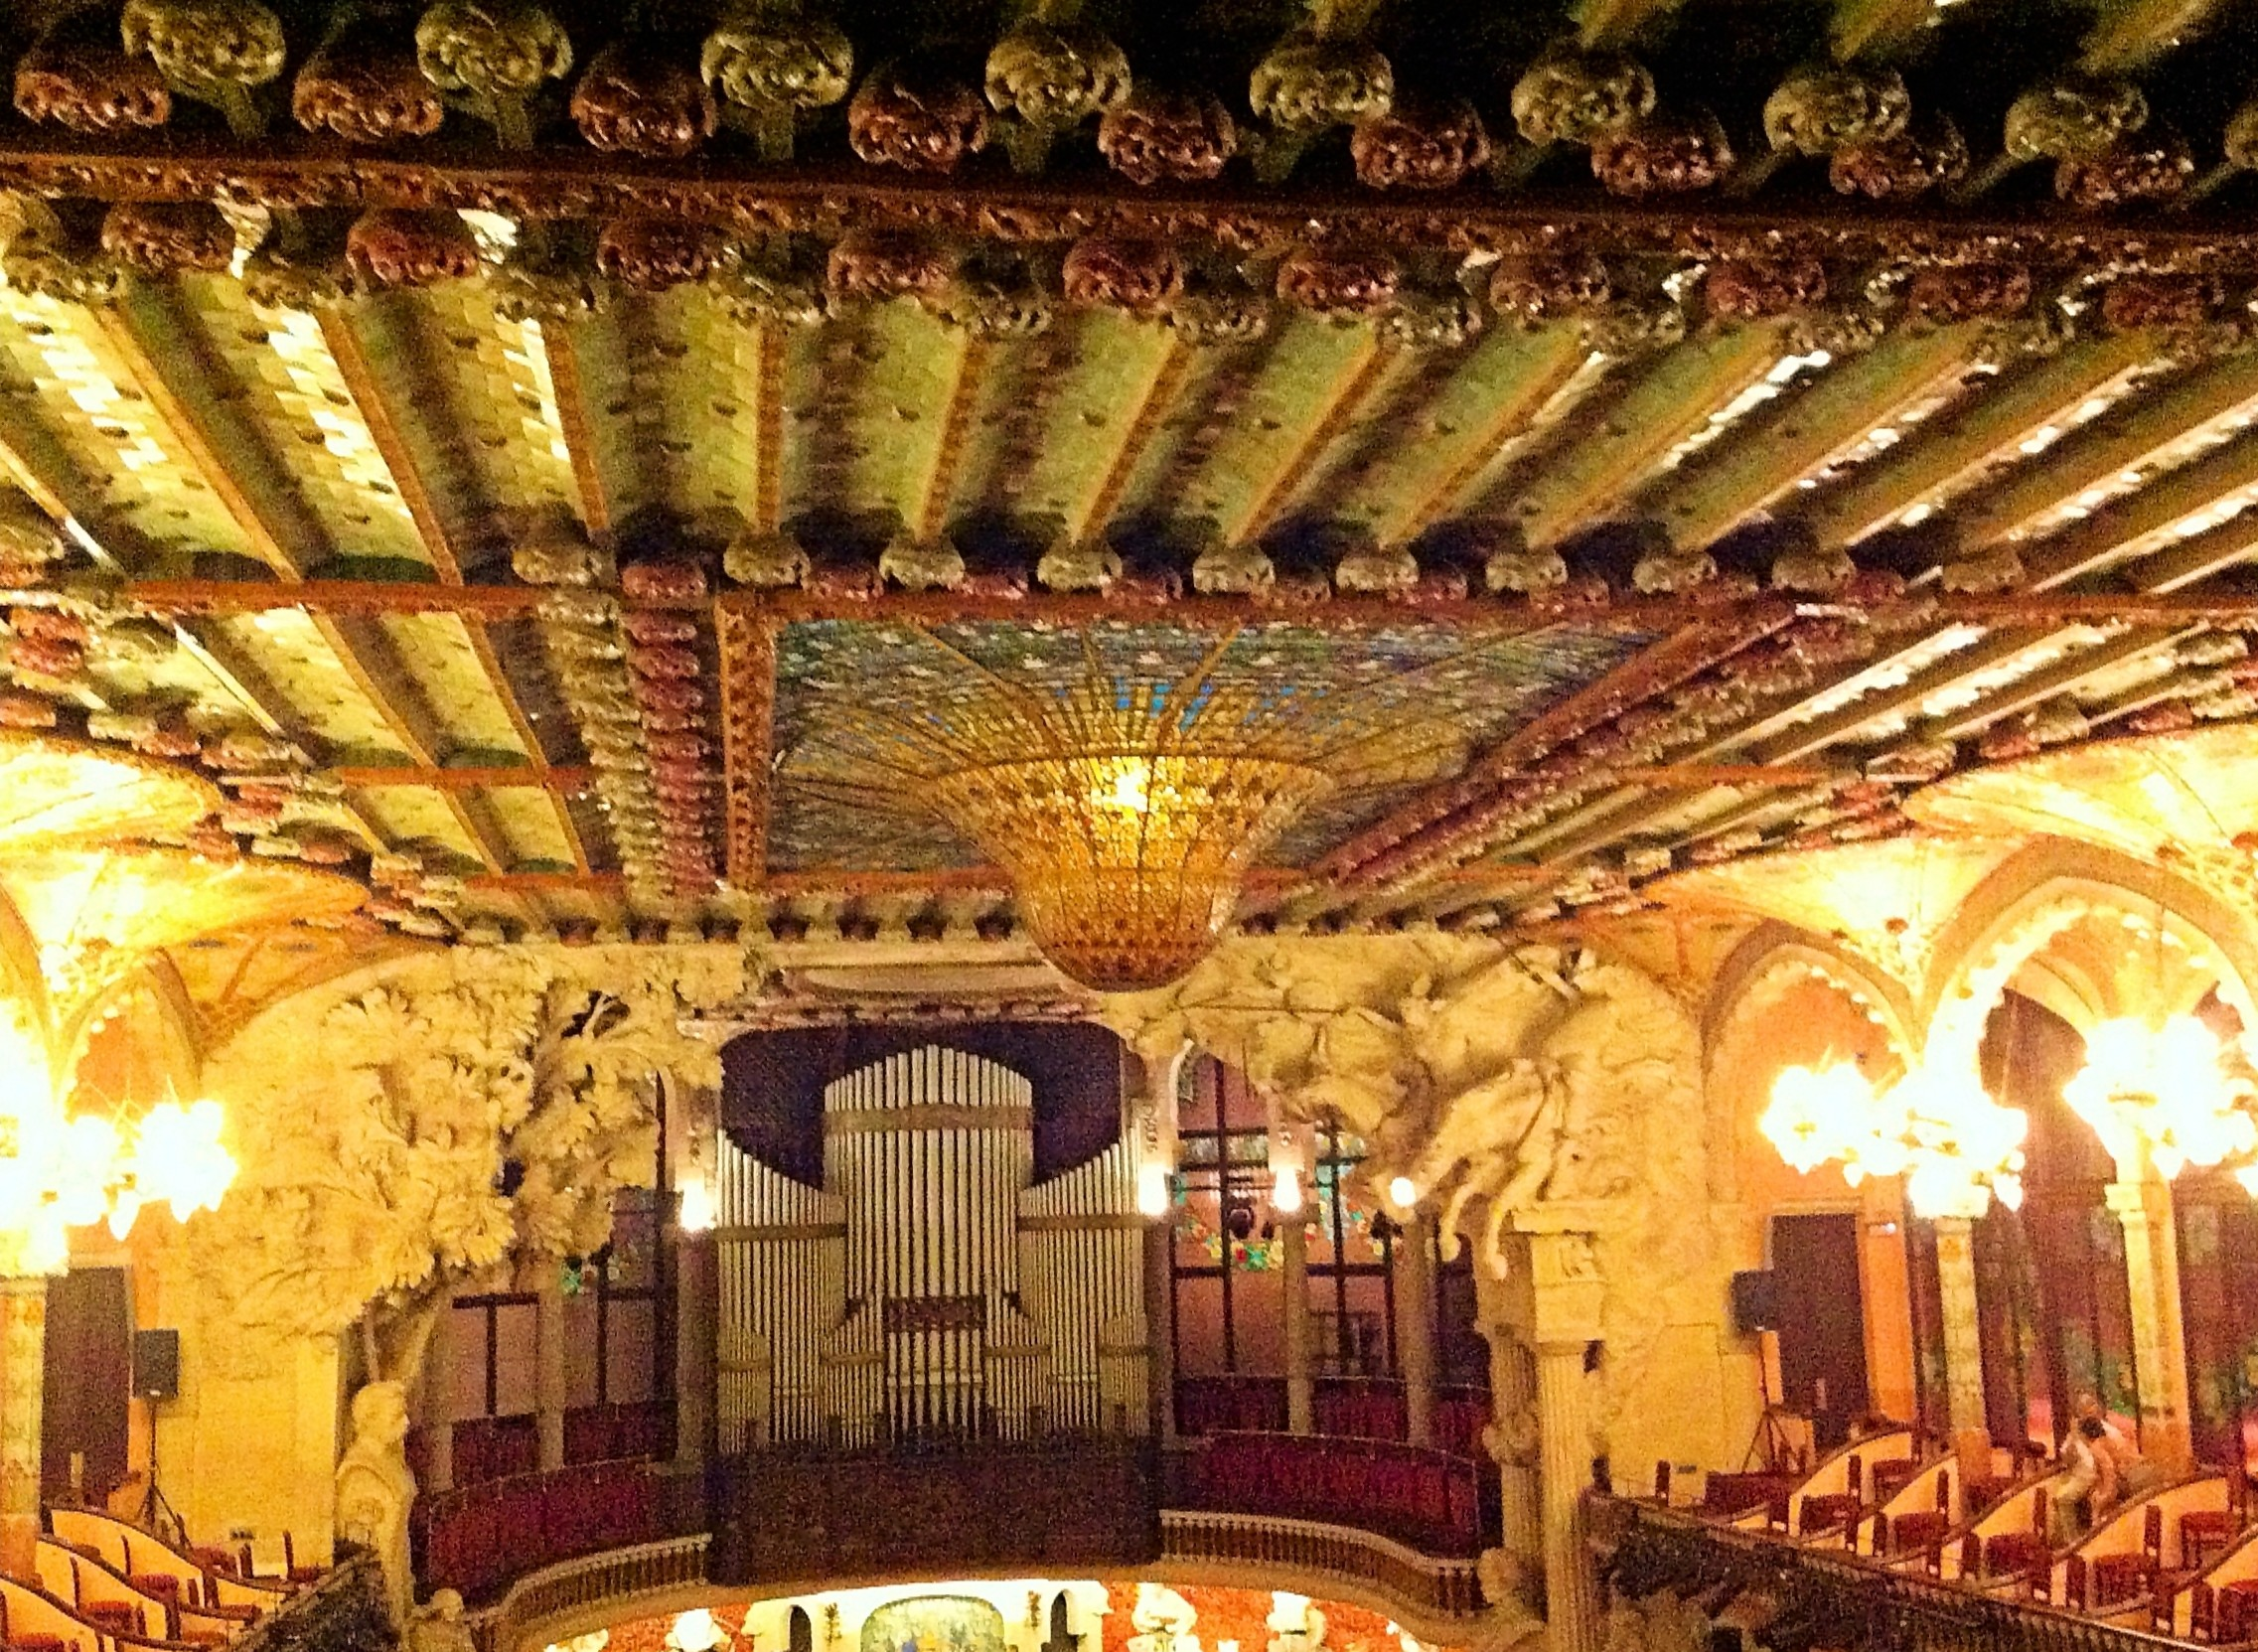 Inside the Palau de la Musica Catalana